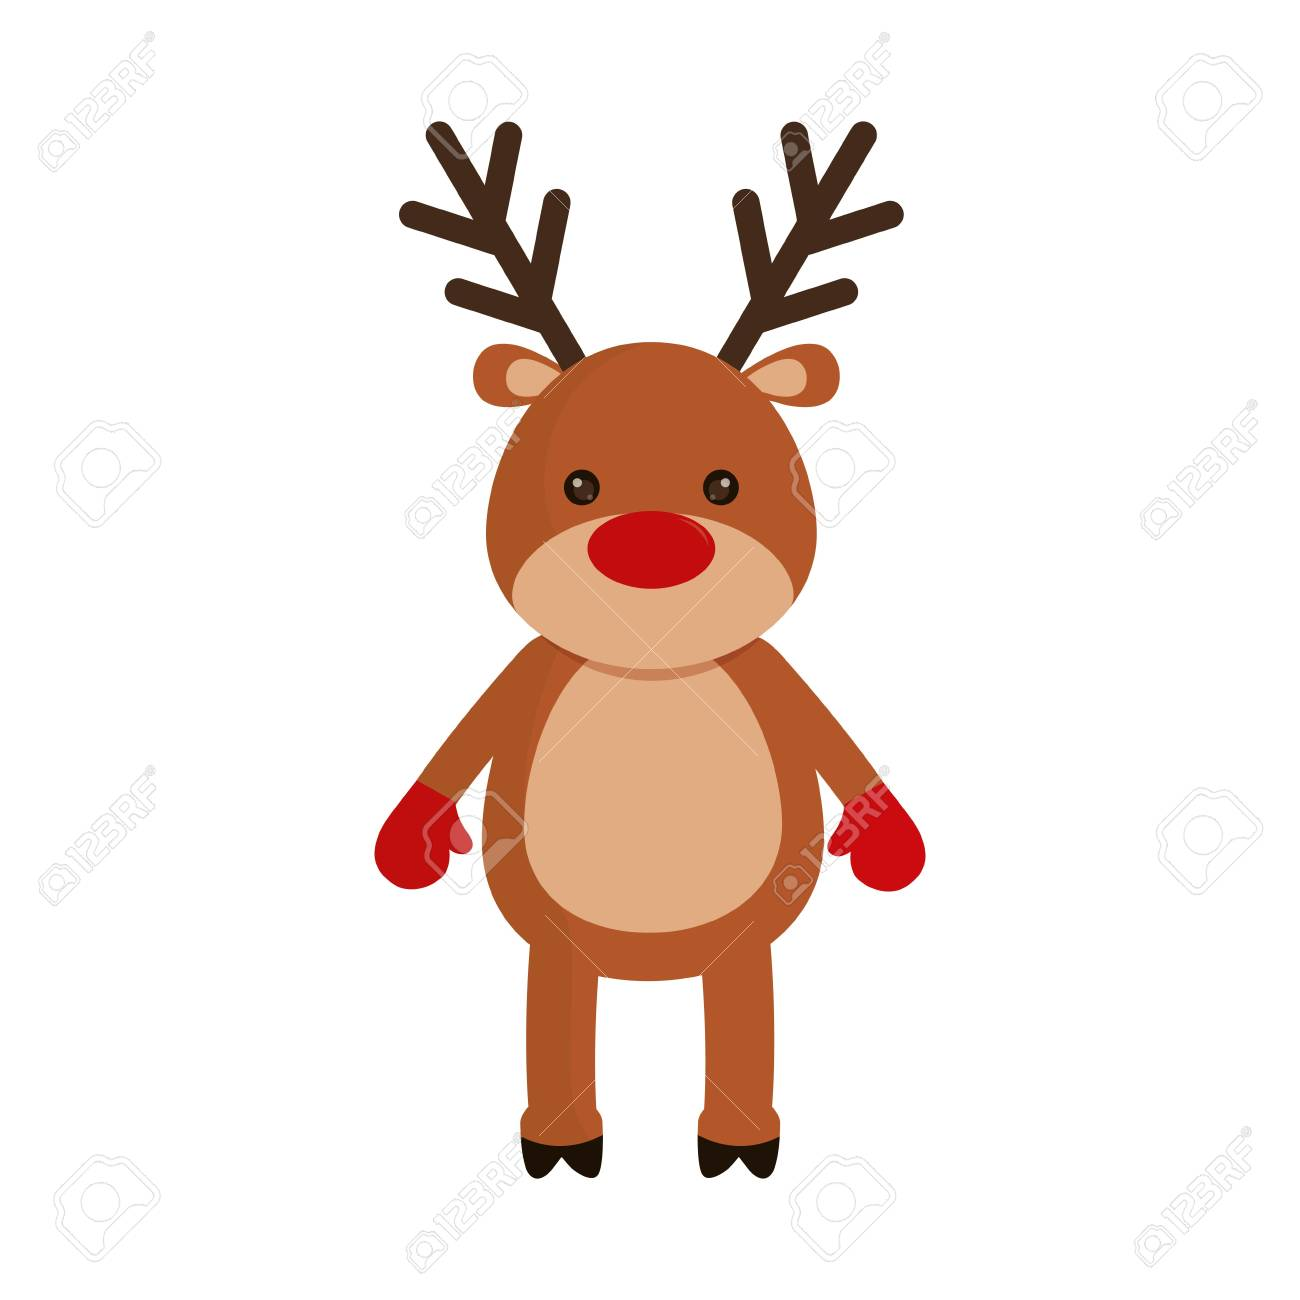 rudolph deer cartoon icon over white background colorful design